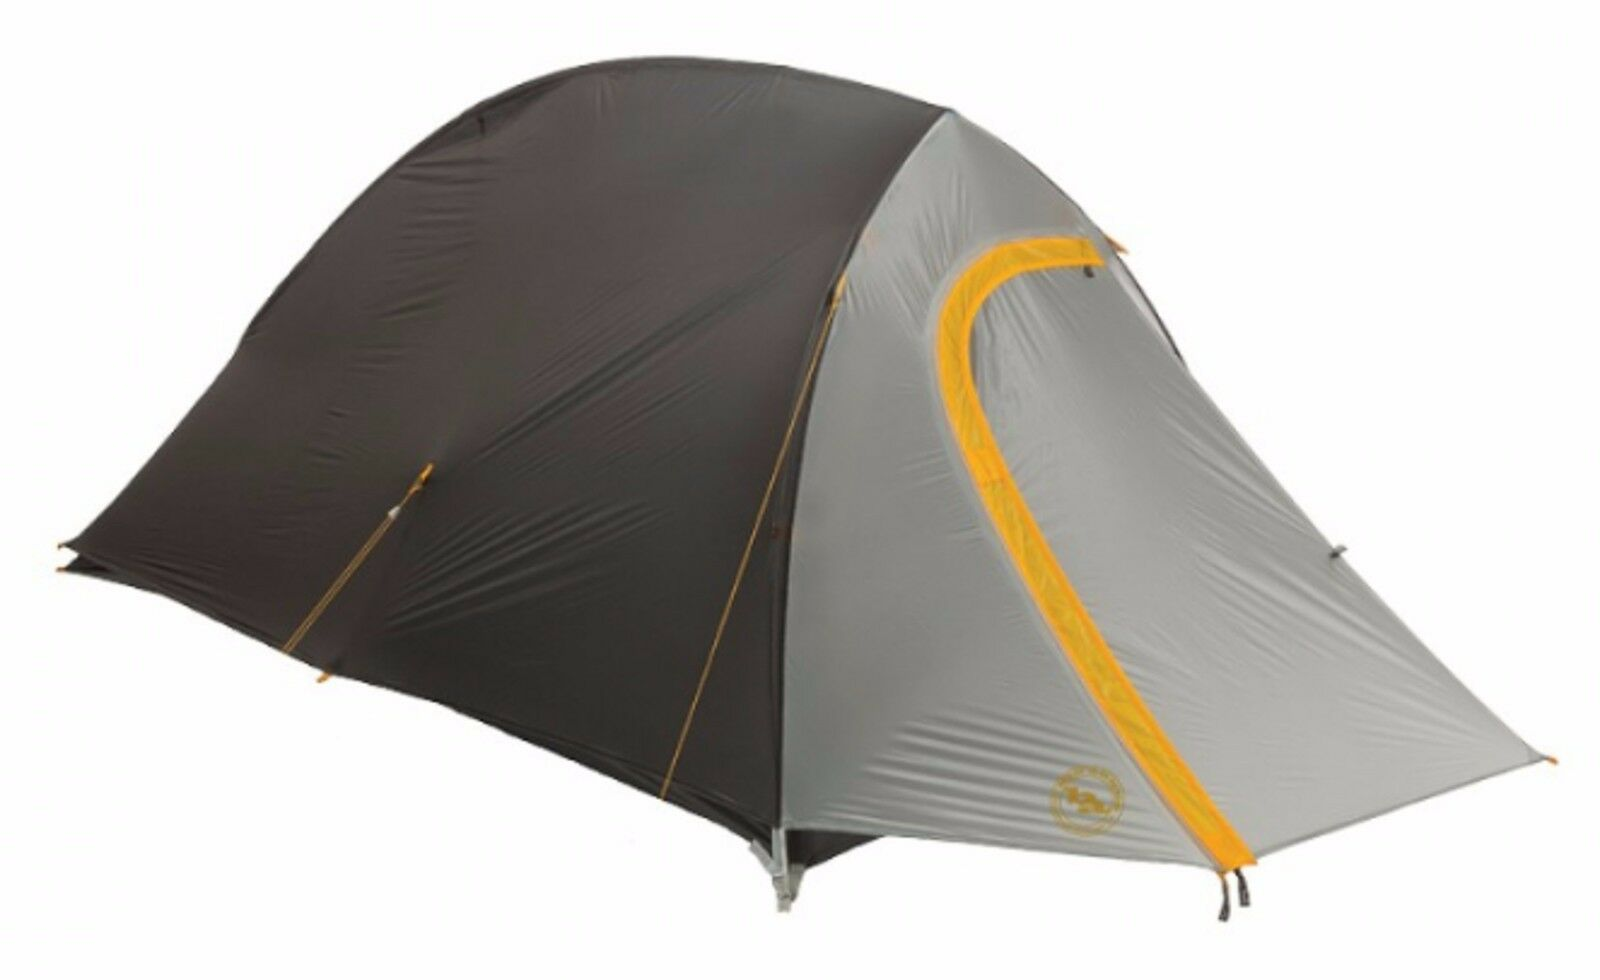 Big Agnes Fly Creek High Volume Ultralight (UL) 1 mtnGlo Tent with footprint New